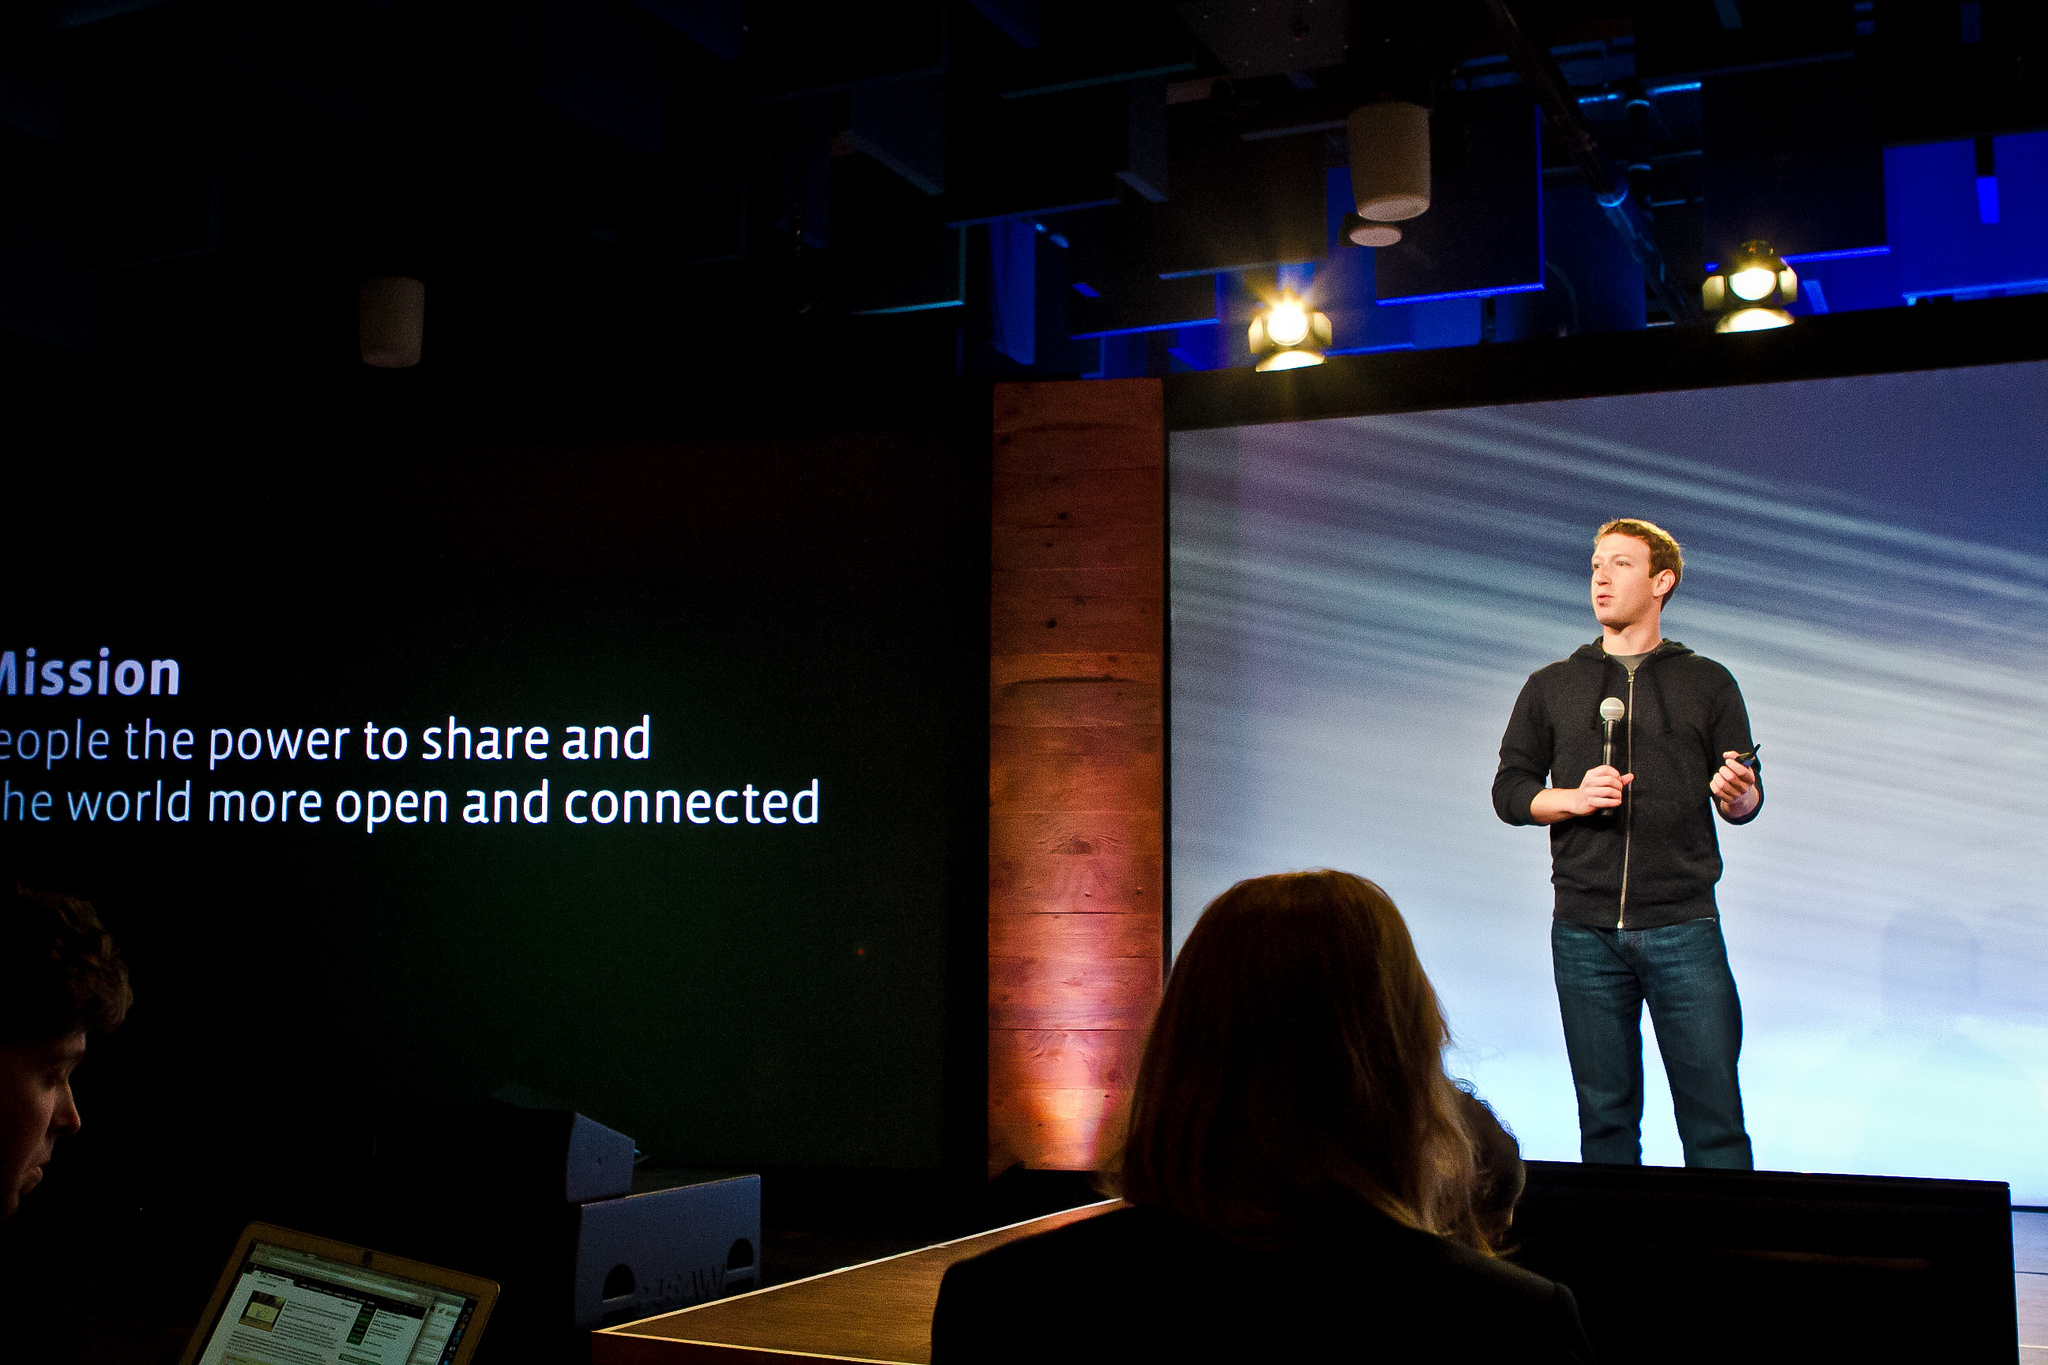 Facebook CEO Mark Zuckerberg speaking at a press event on June 20, 2013 ahead of the launch of video support on Instagram.